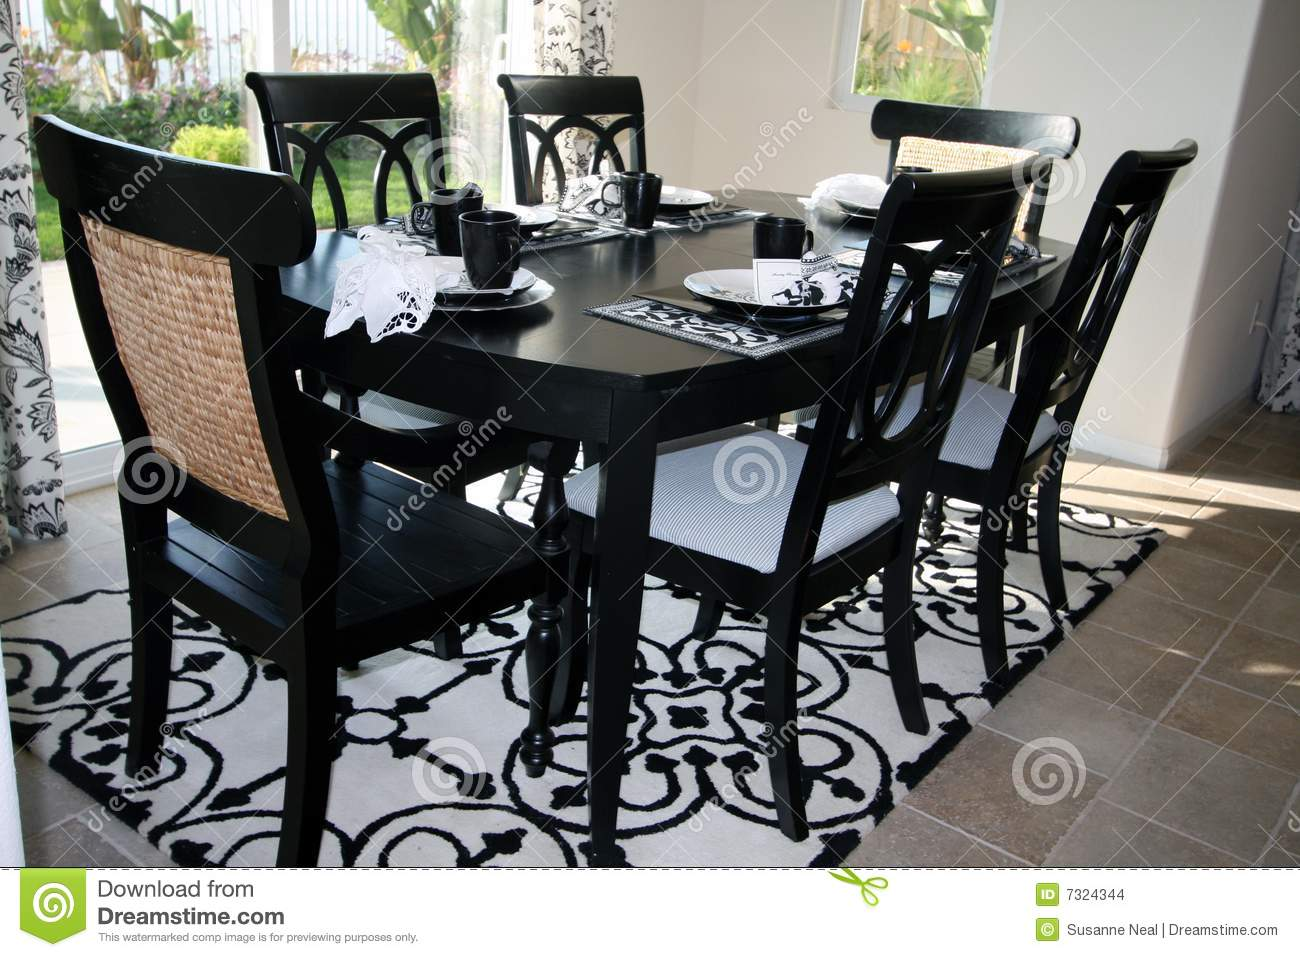 Dining Set In Black And White Stock Images Image 7324344 : dining set black white 7324344 from www.dreamstime.com size 1300 x 957 jpeg 163kB